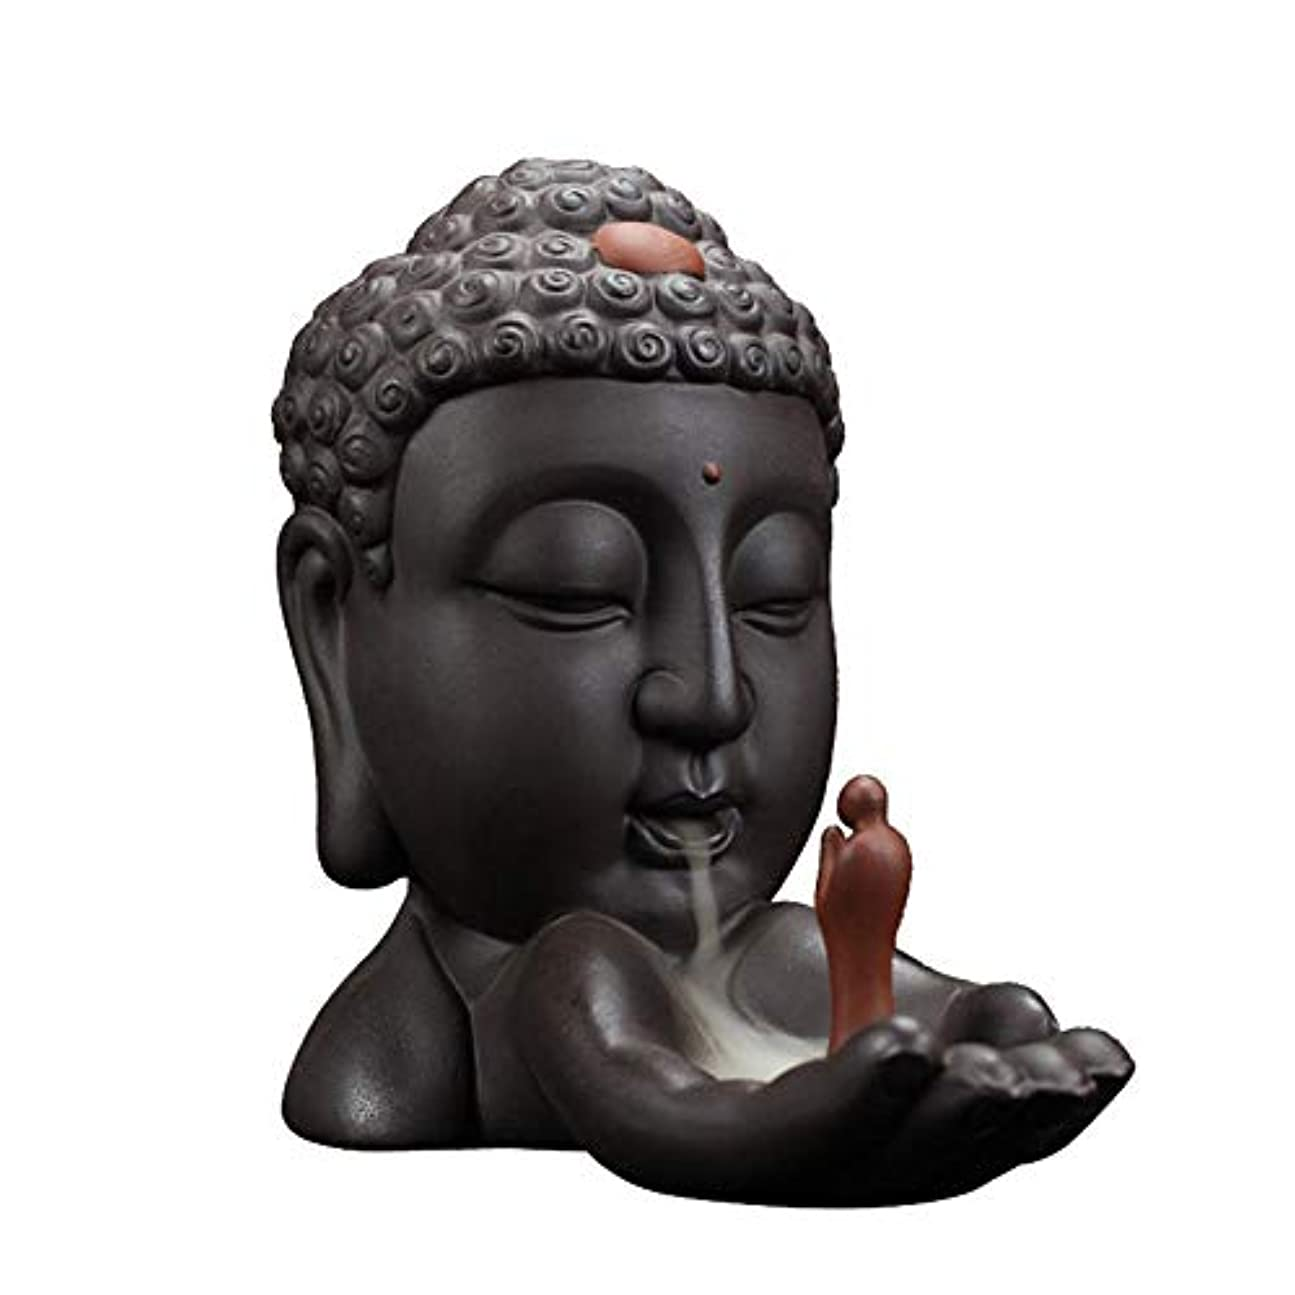 代表崇拝する病Alenx Backflow Incense Burner Buddha、長い燃焼香炉、Backflow Incense Burner Waterfall 1 Incense Burner + 10pcs Backflow...